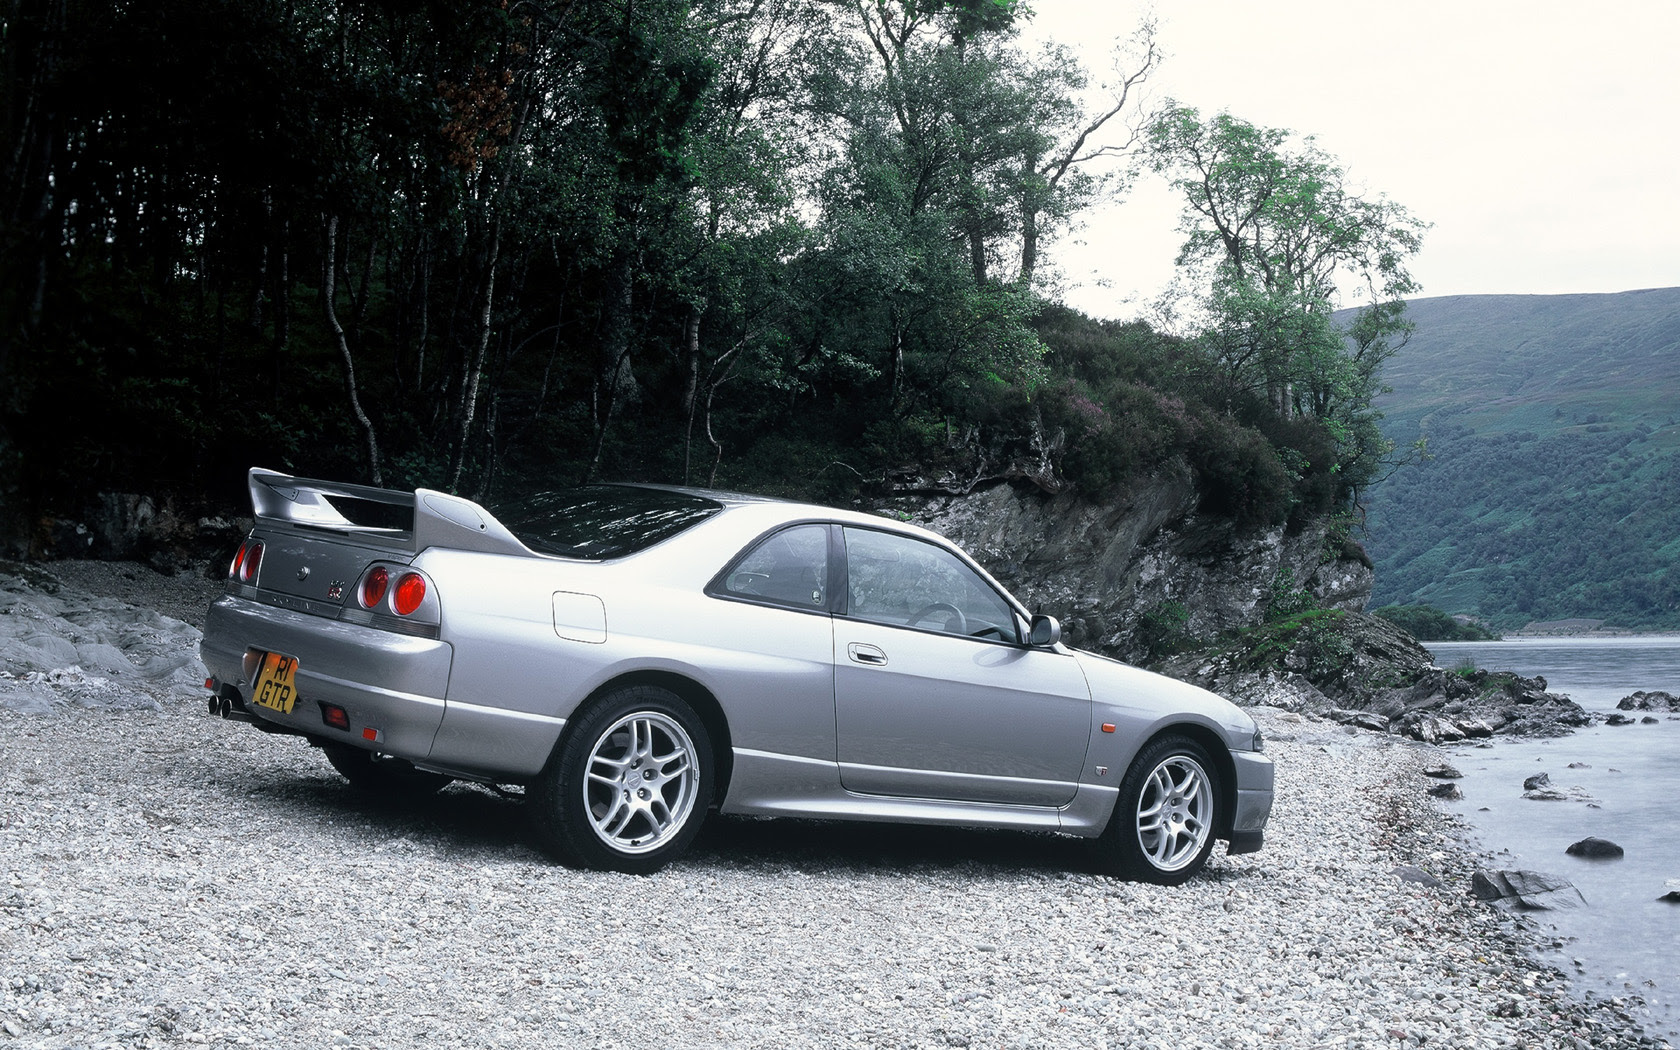 R33 Nissan Skyline Gtr Free Widescreen Wallpaper Desktop